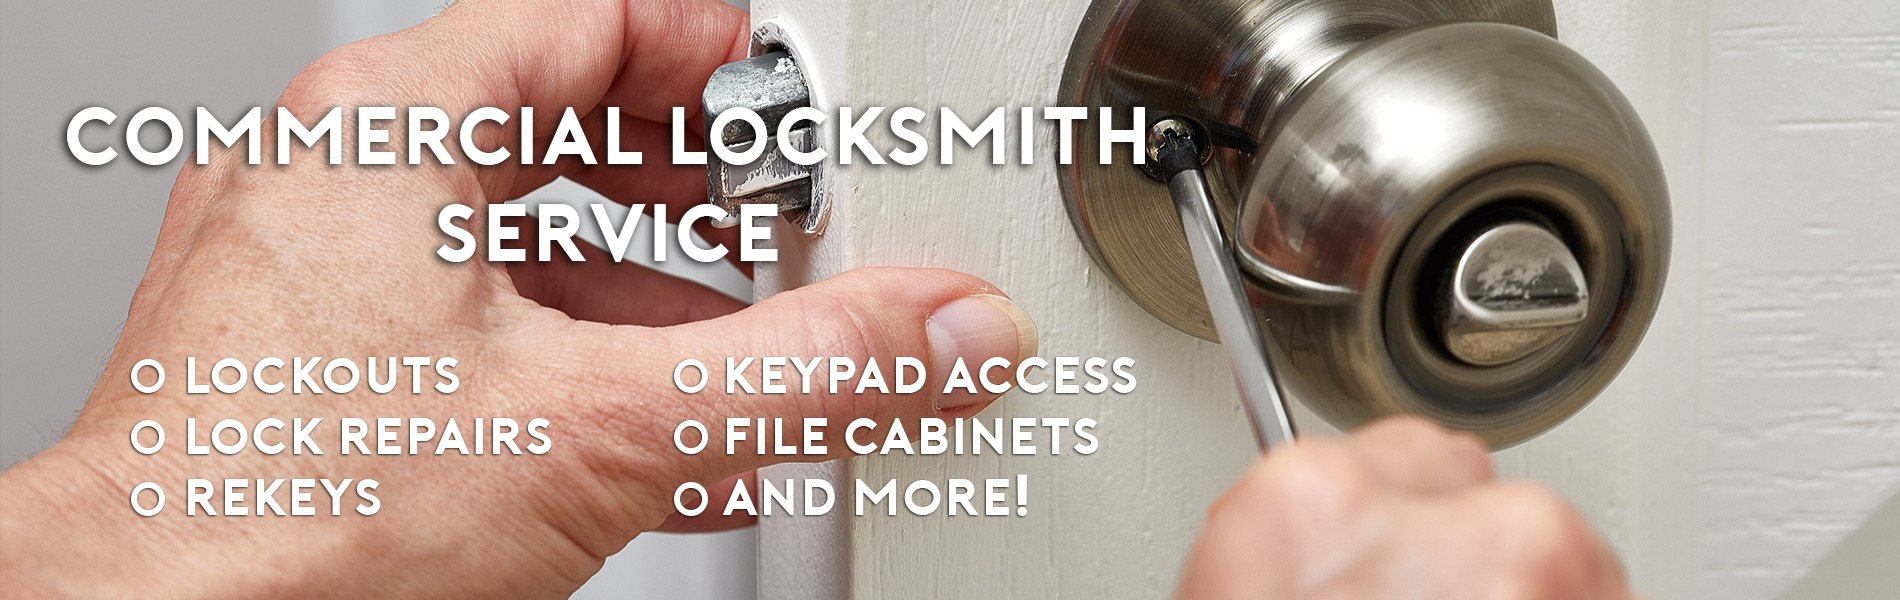 City Locksmith Shop Crete, IL 708-297-9148